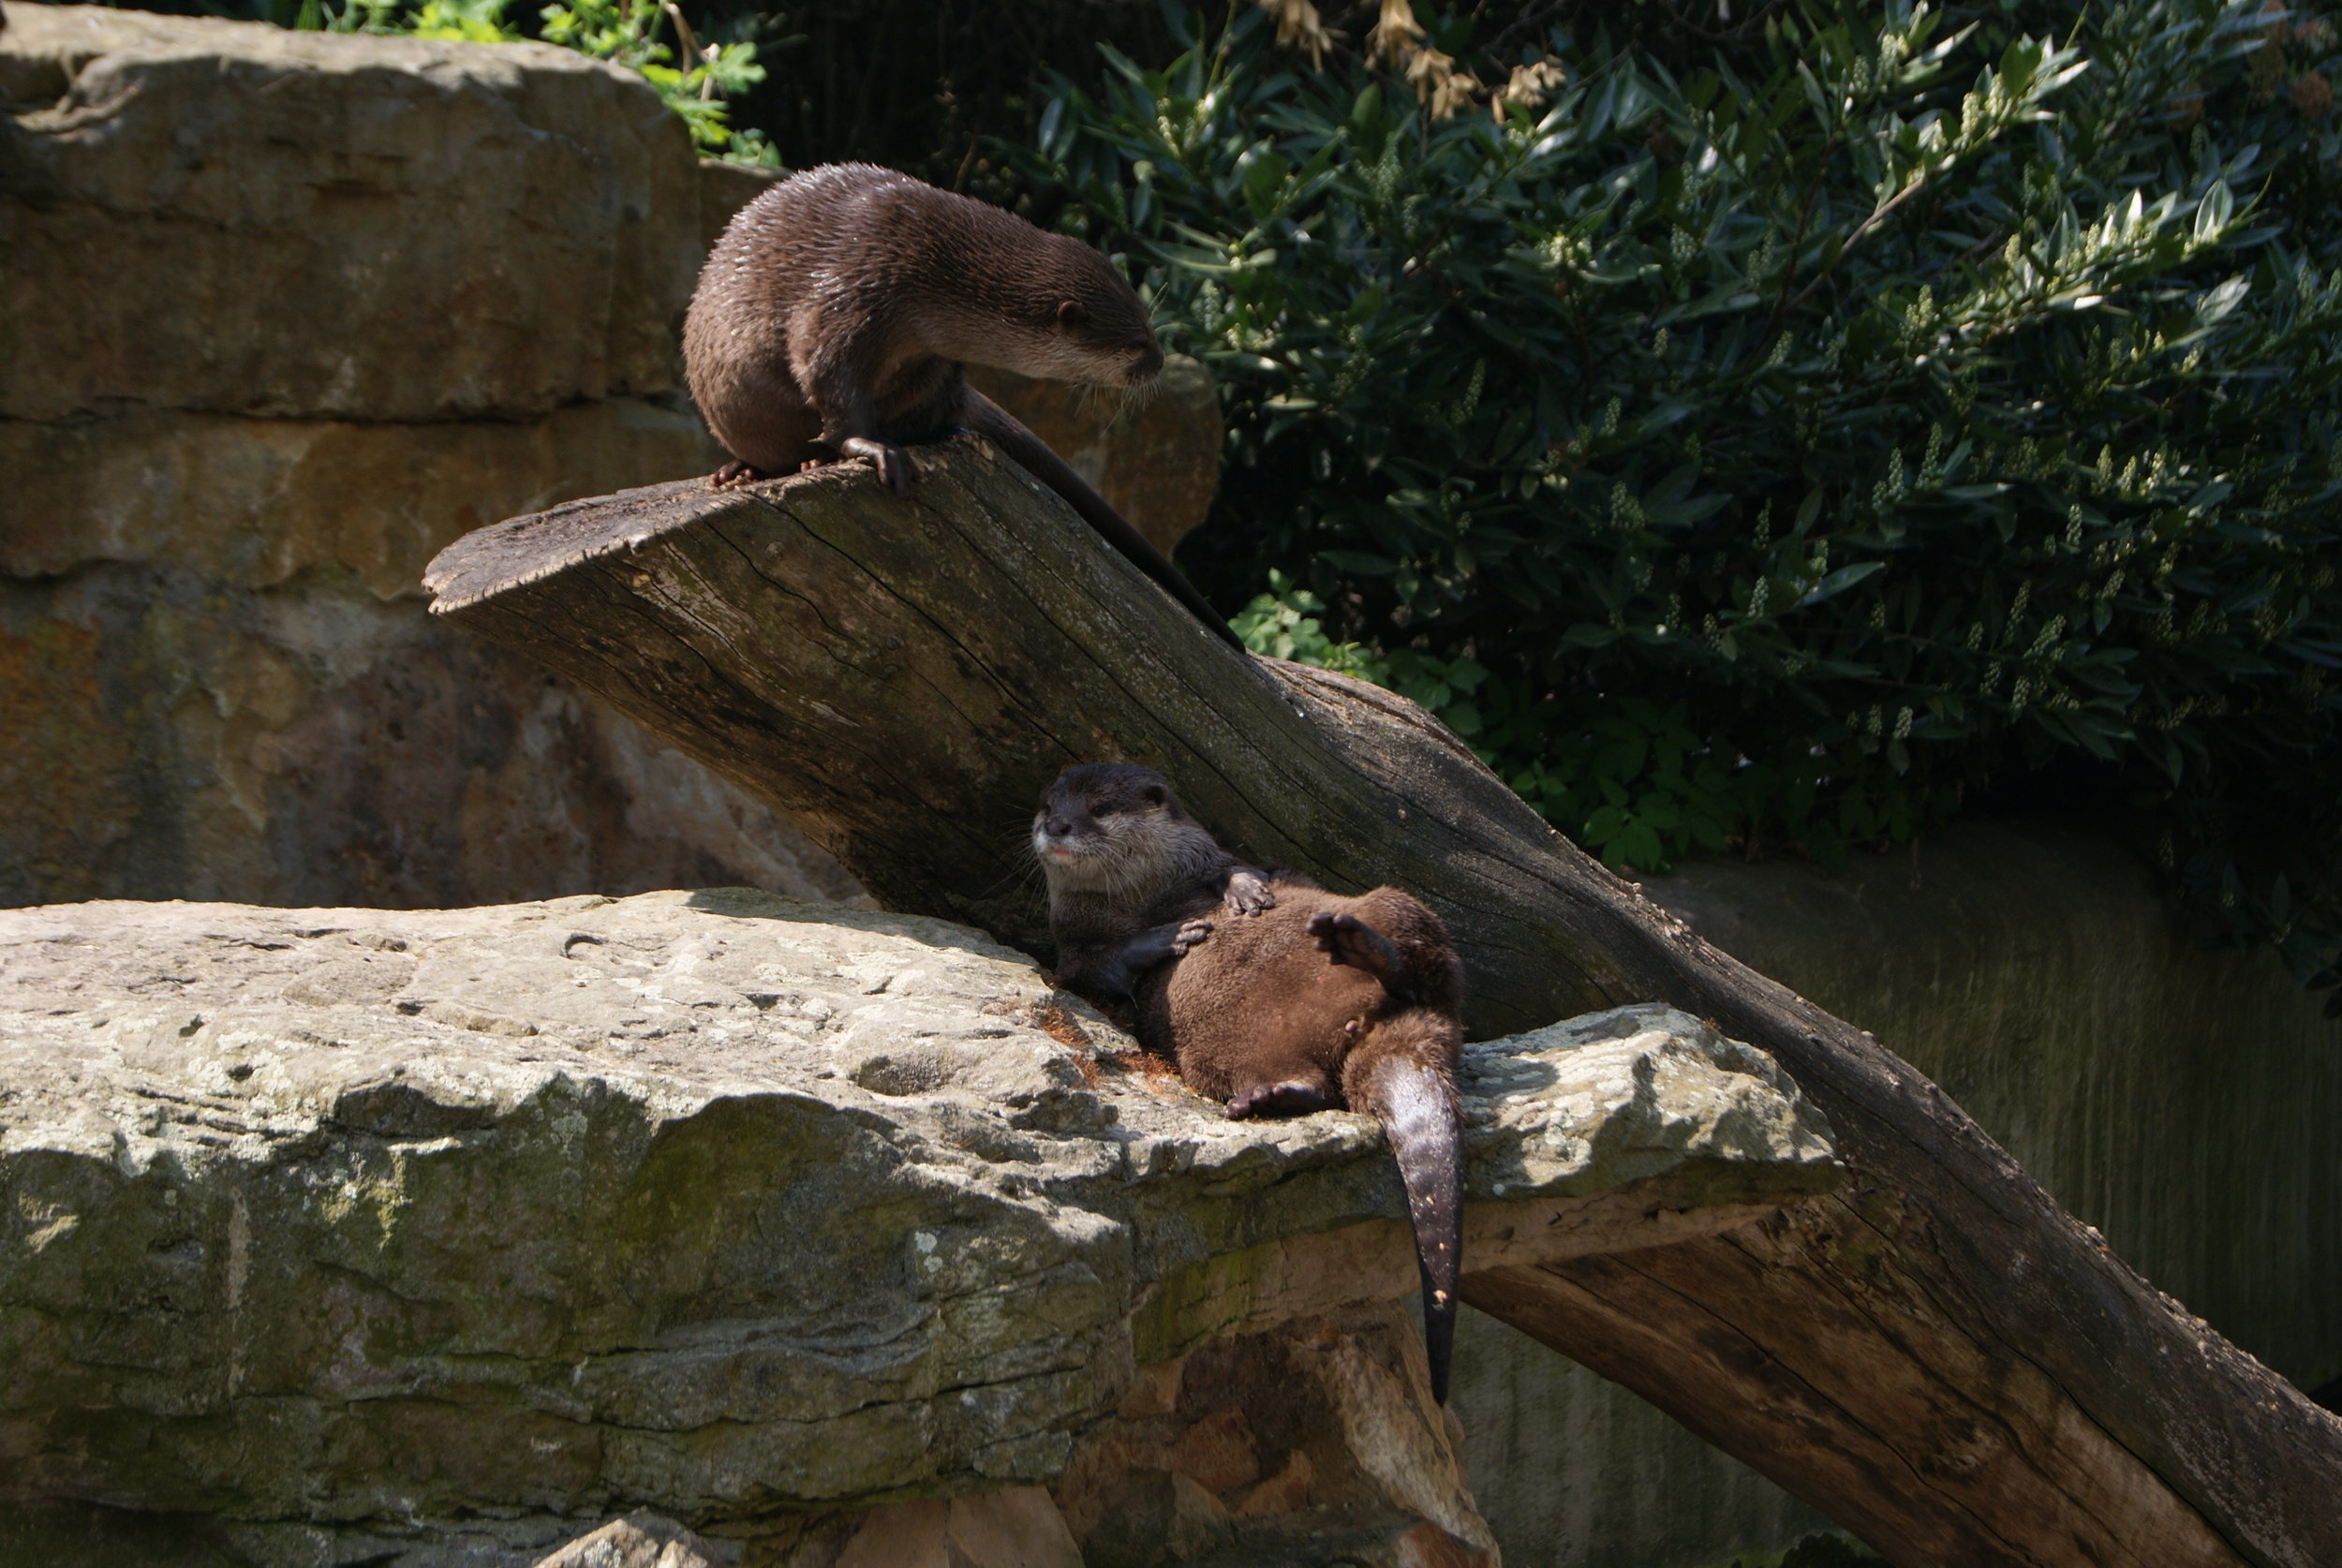 Just Another Day in the Life of Otters: A Bit of Lounging, a Bit of Climbing